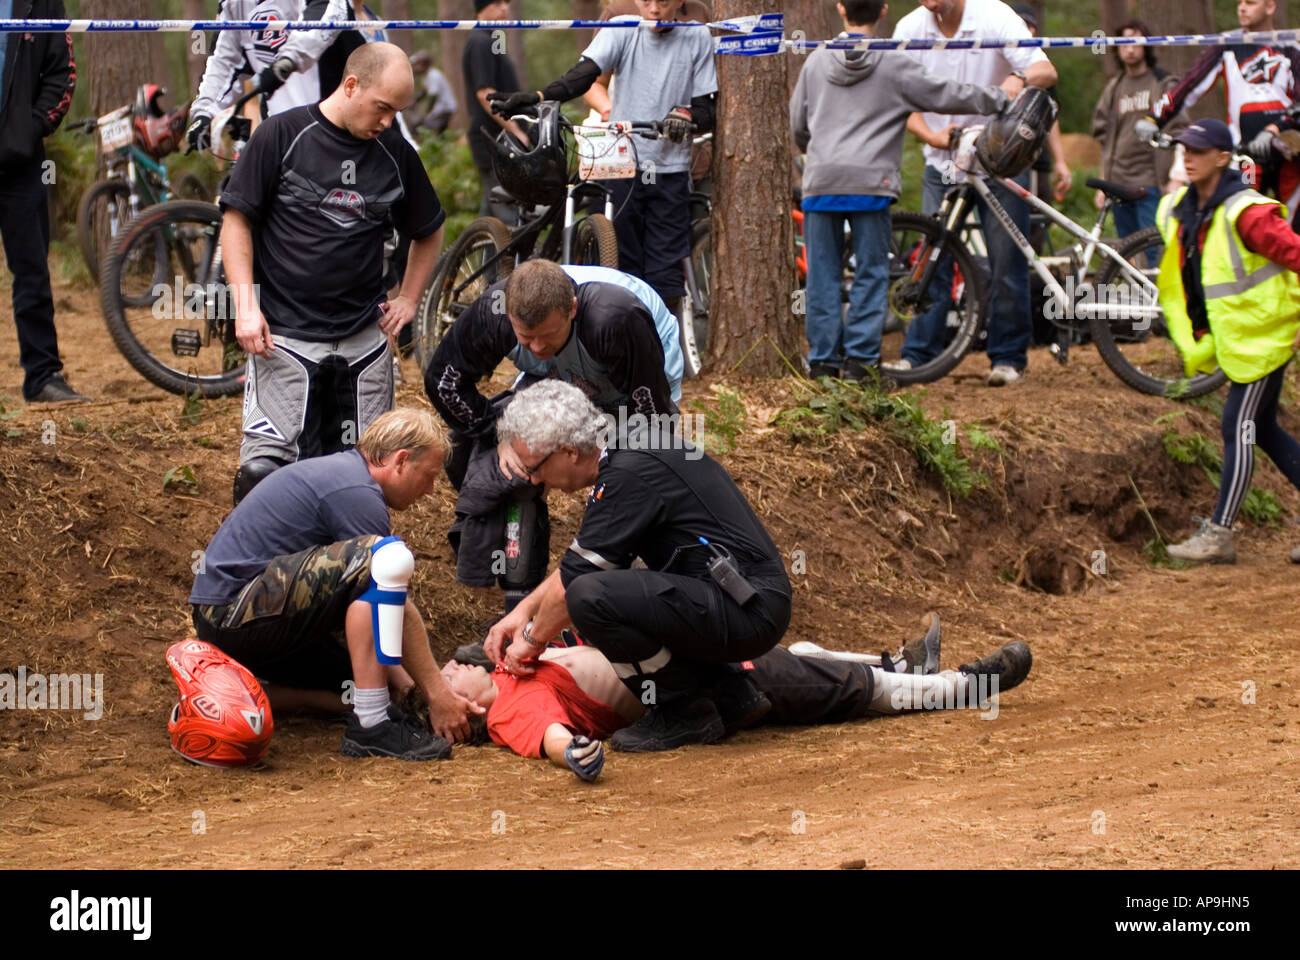 Exteme Medics attend a mountain bike crash at the final Round of the National 4X Series at Beds Fat Trax Chicksands - Stock Image